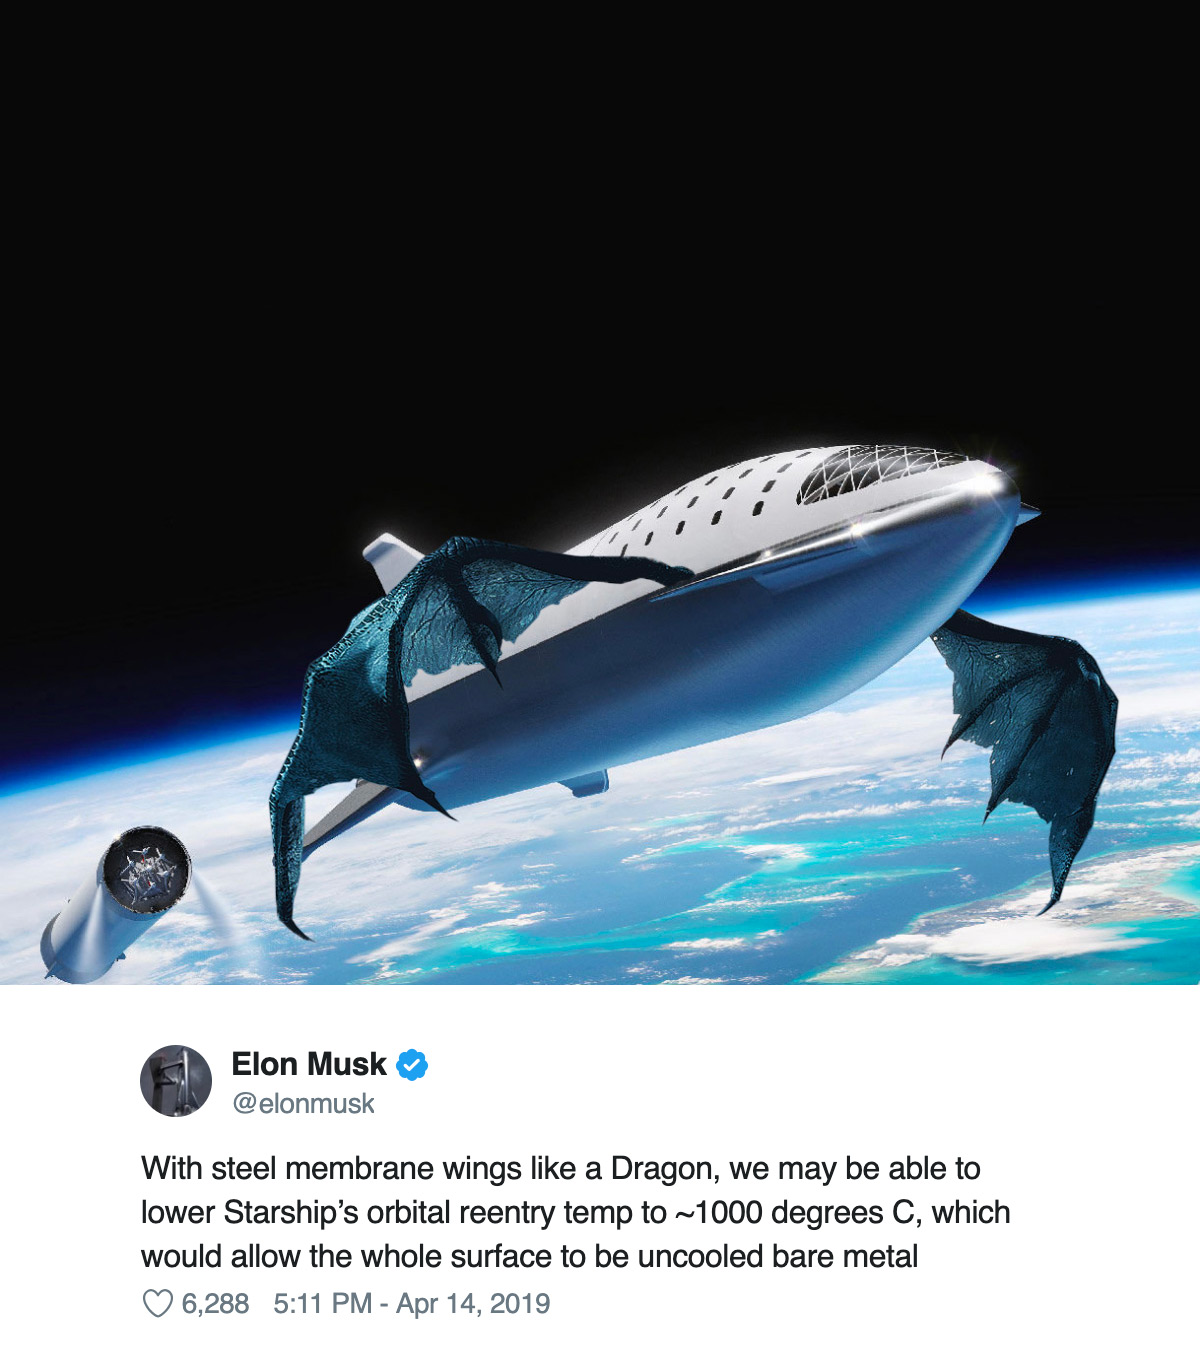 Elon Musk SpaceX Game of Thrones